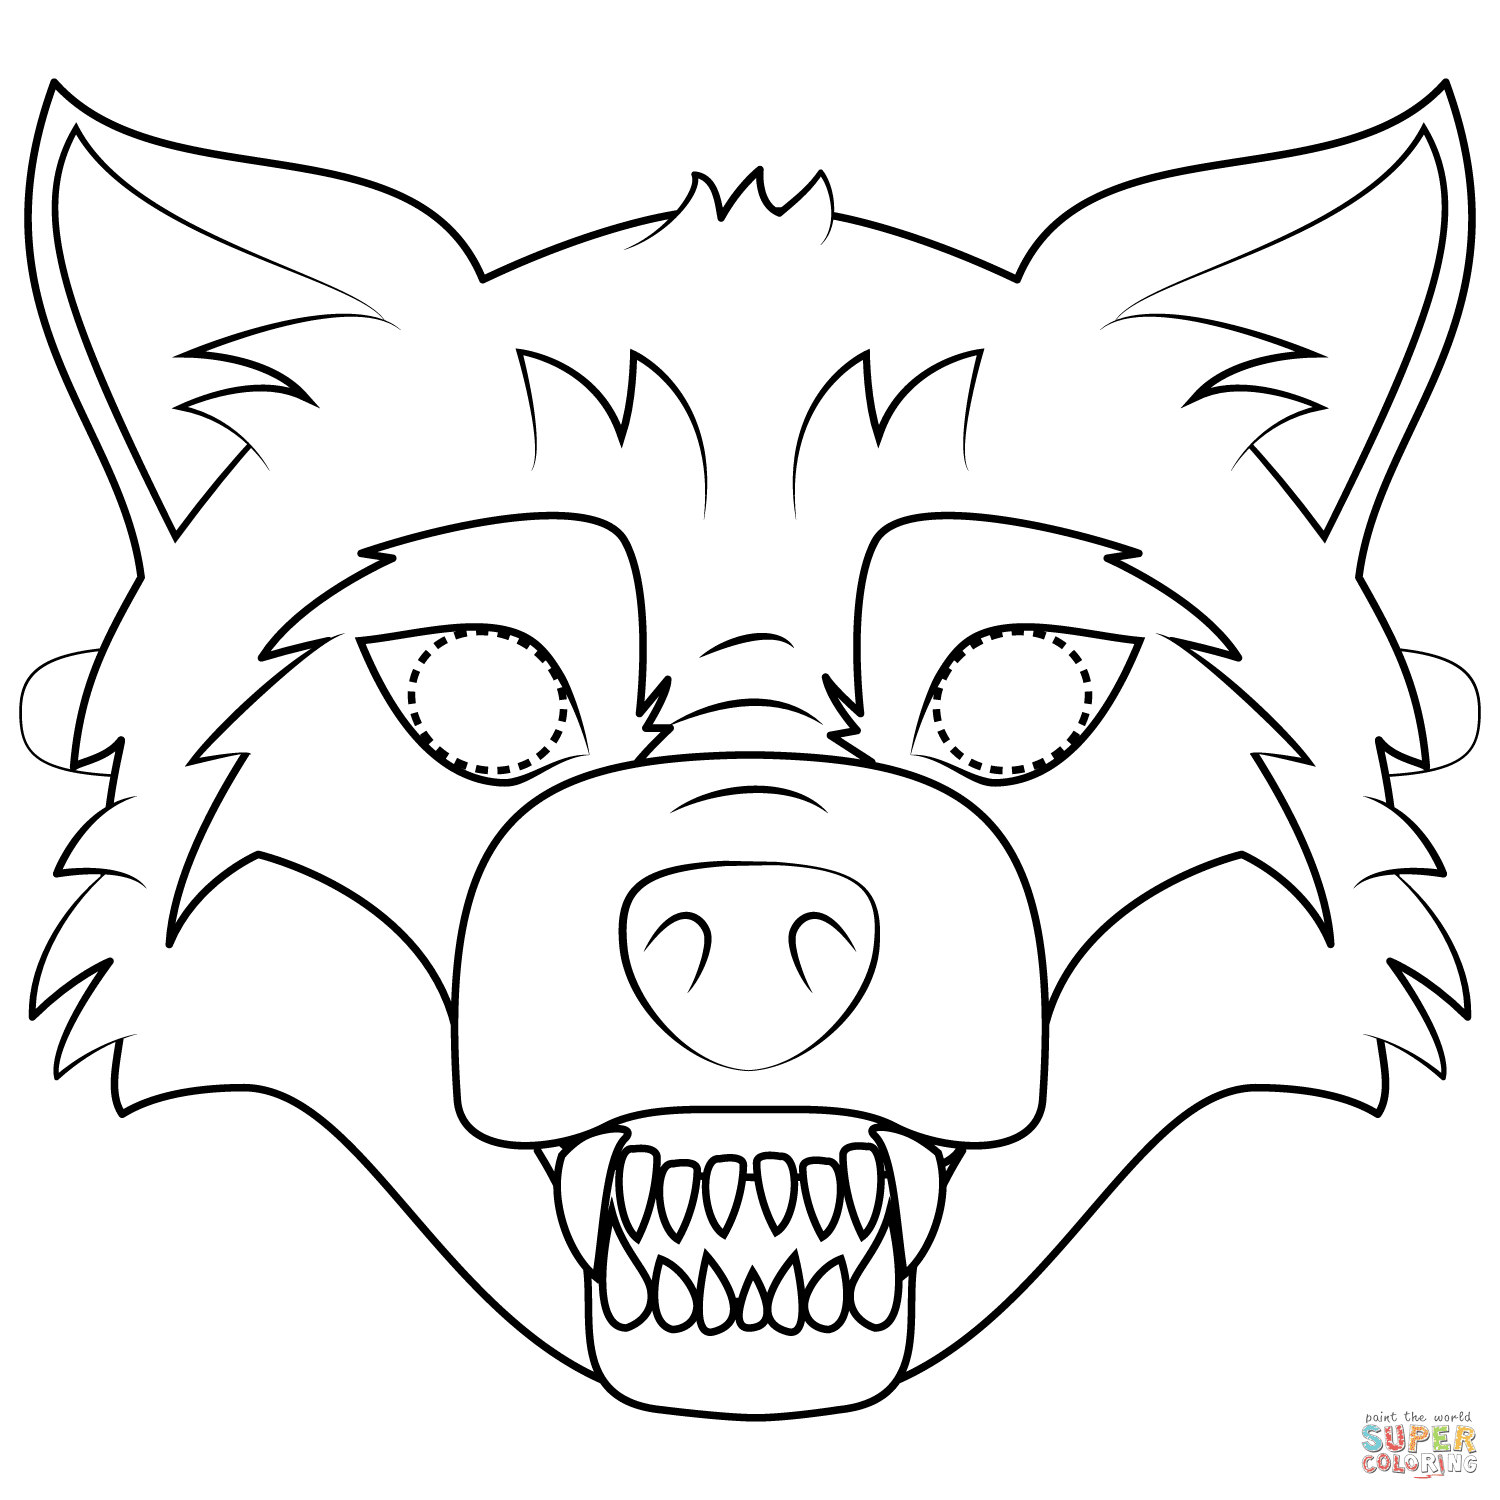 Big Bad Wolf Mask coloring page | Free Printable Coloring ...